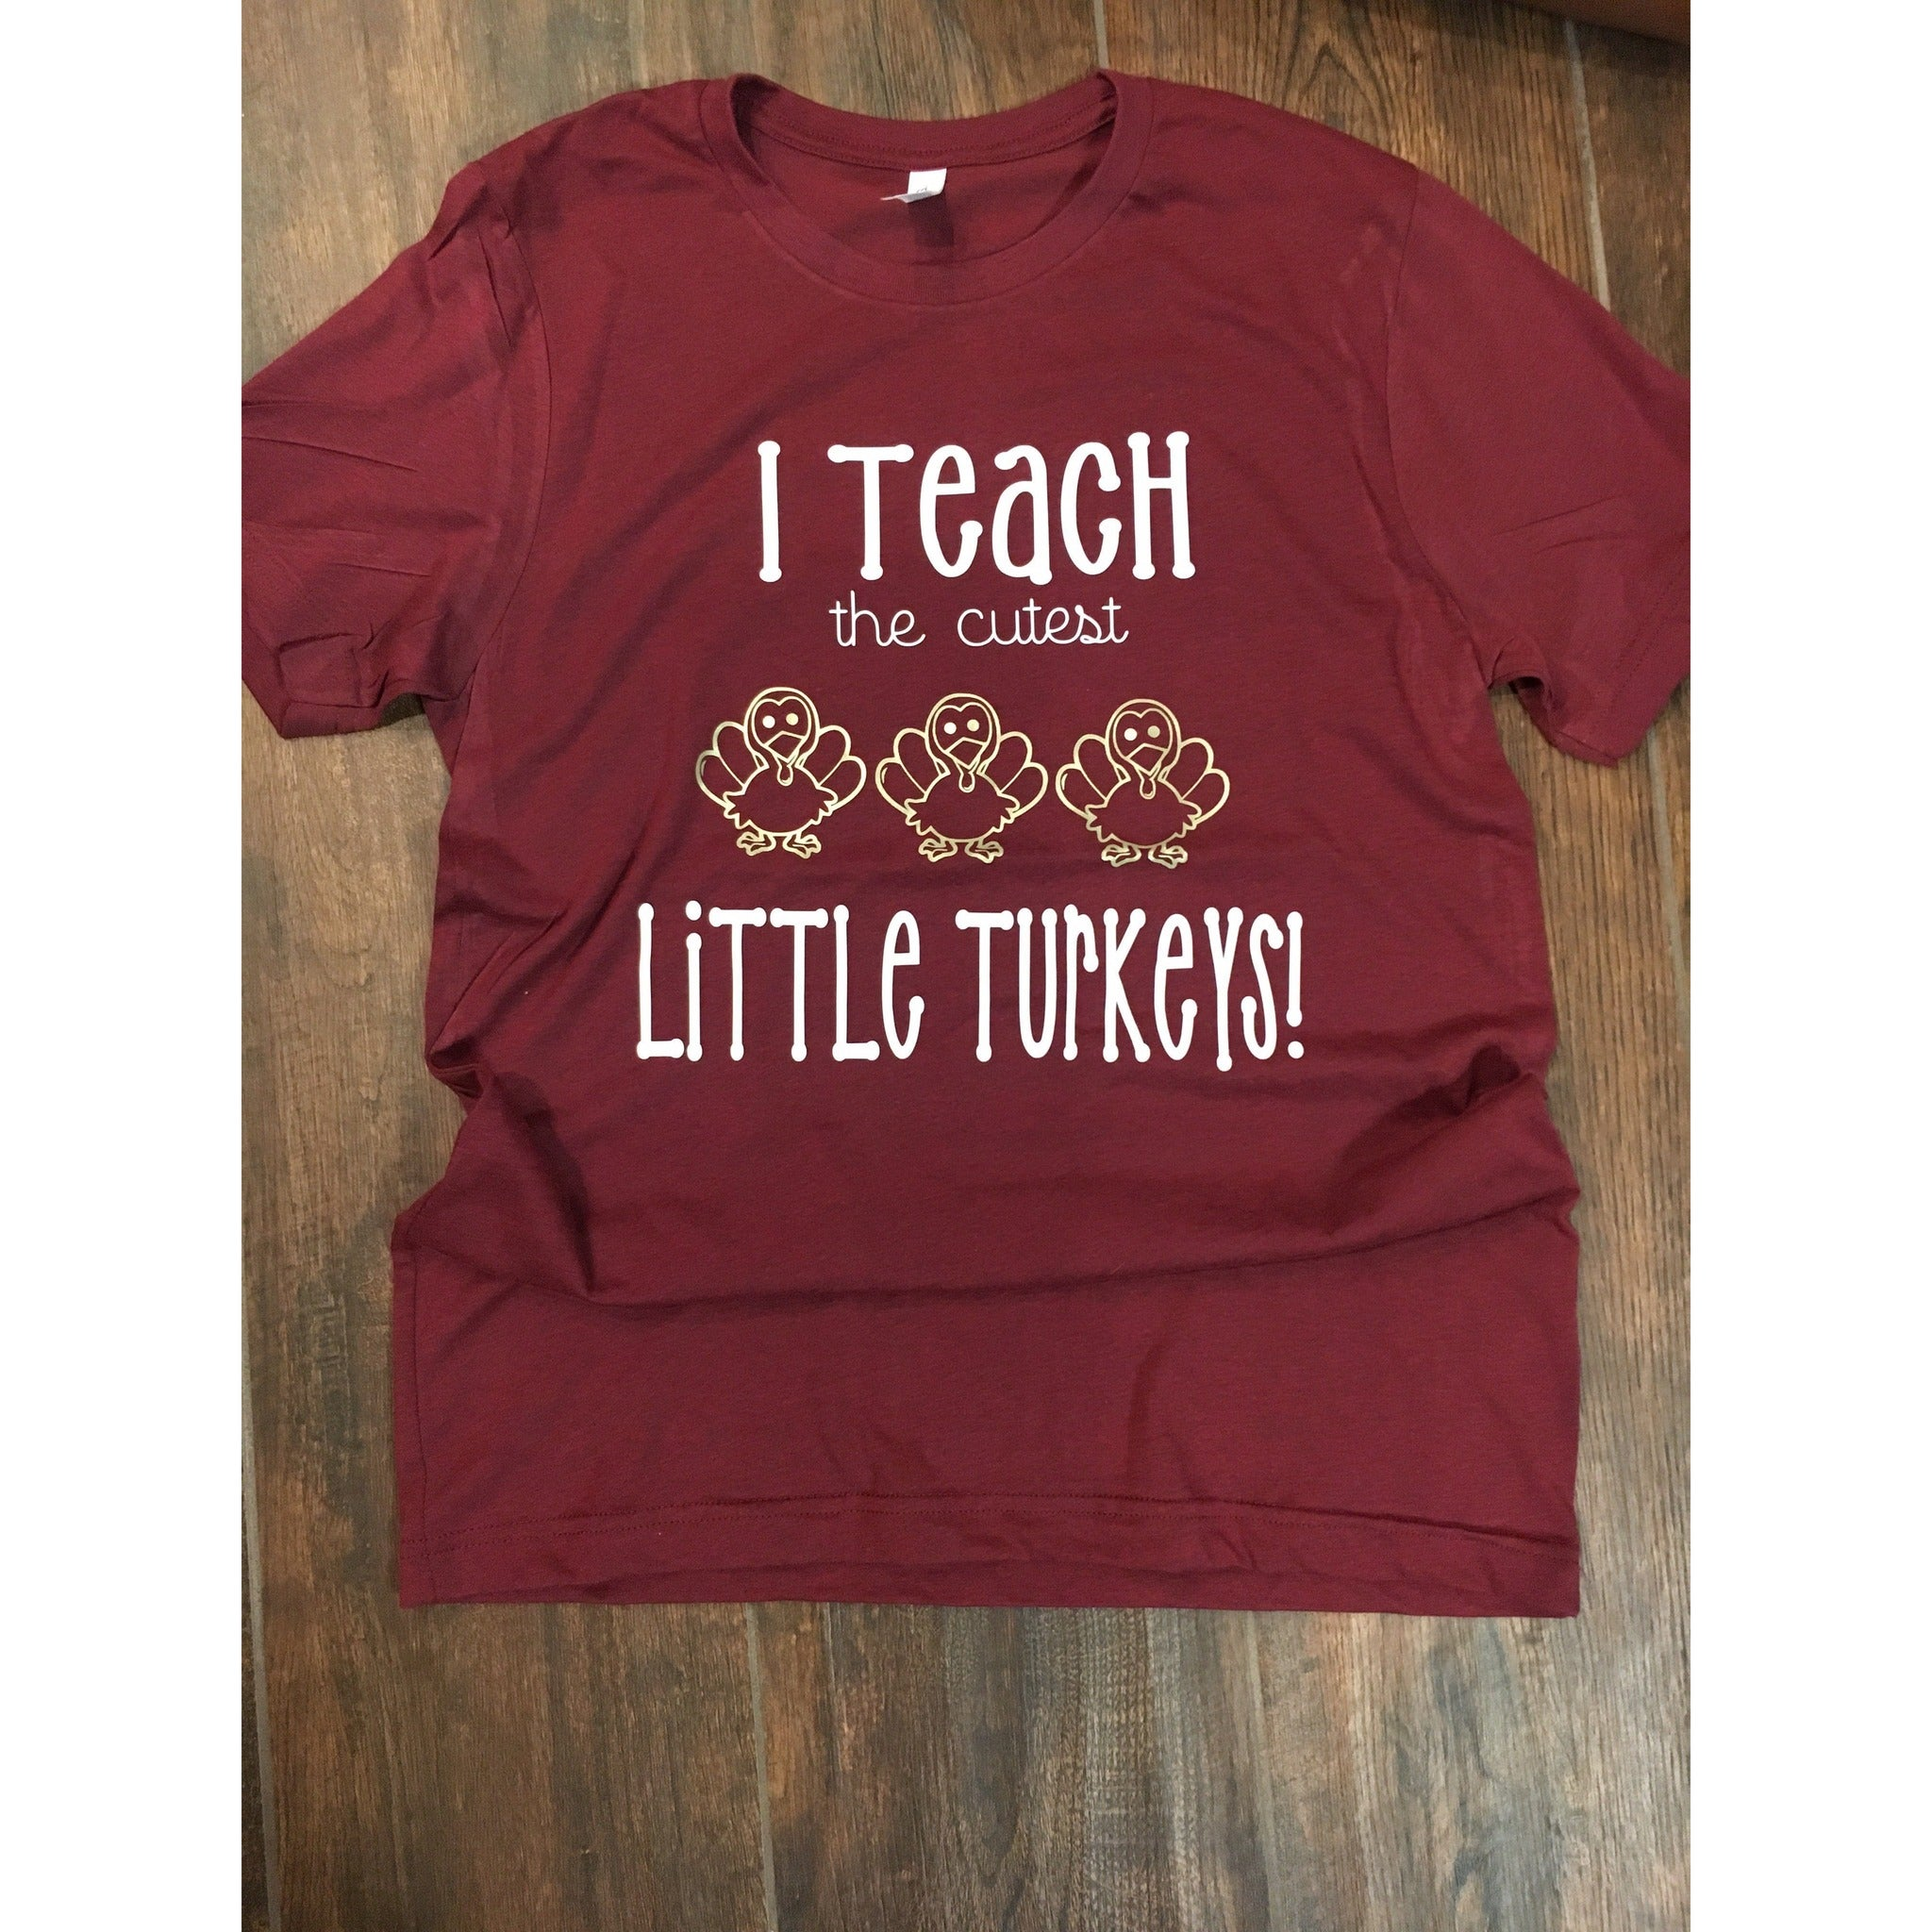 Teach Cutest Turkeys